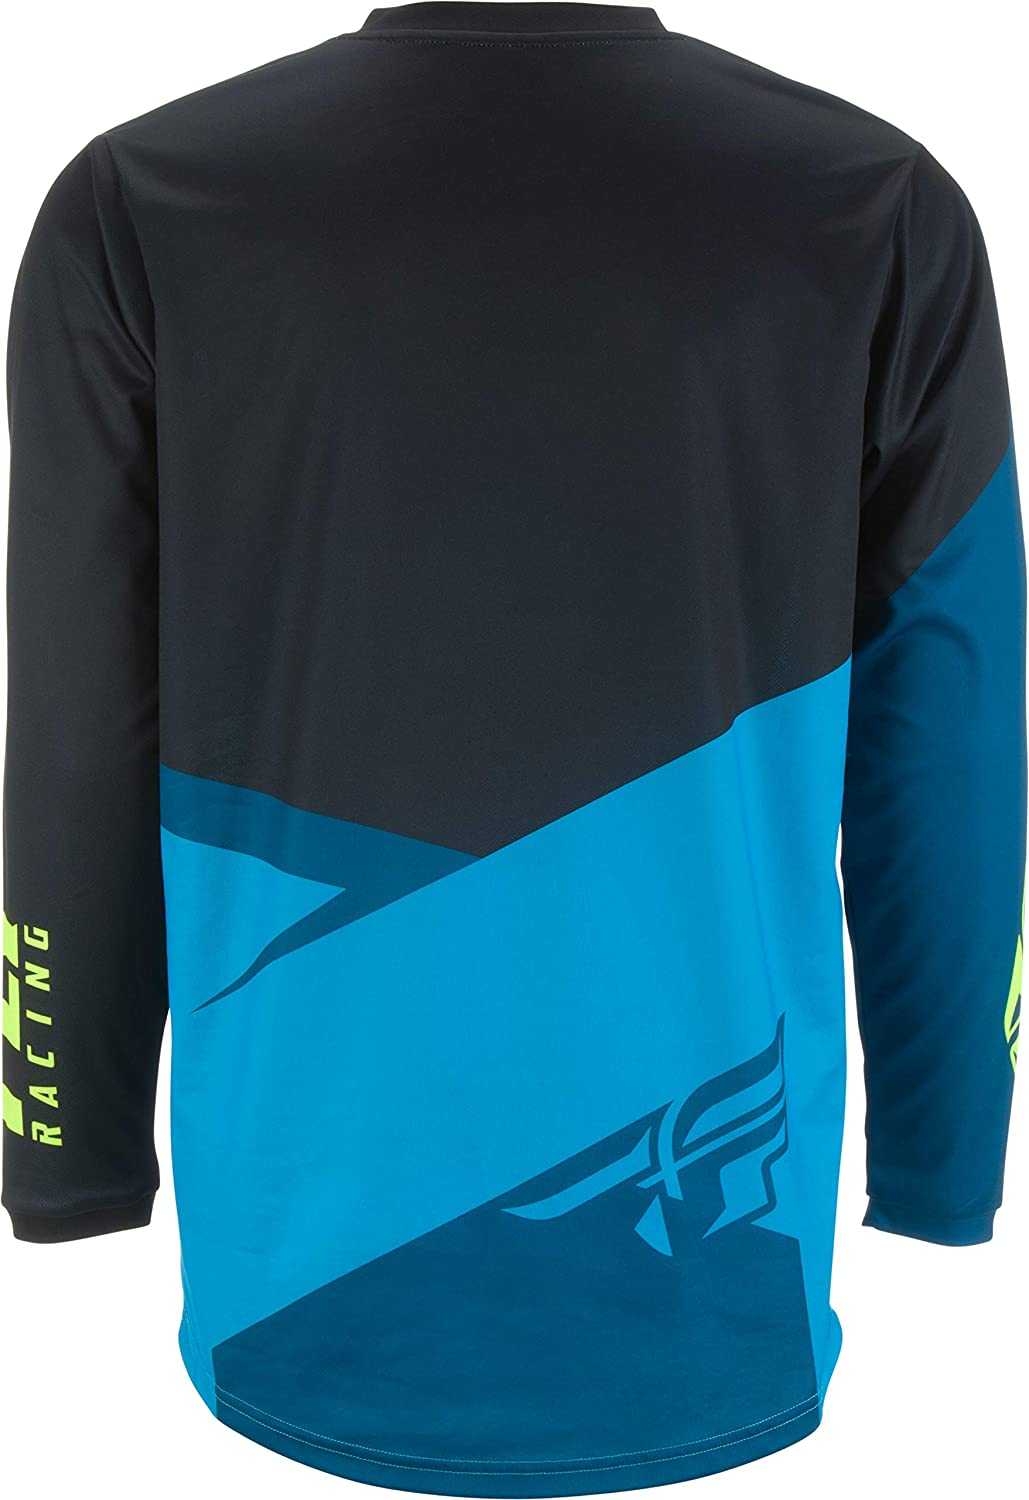 Fly Racing 2019 F-16 Jersey and Pants Combo Blue//Black//Hi-Vis Large,40